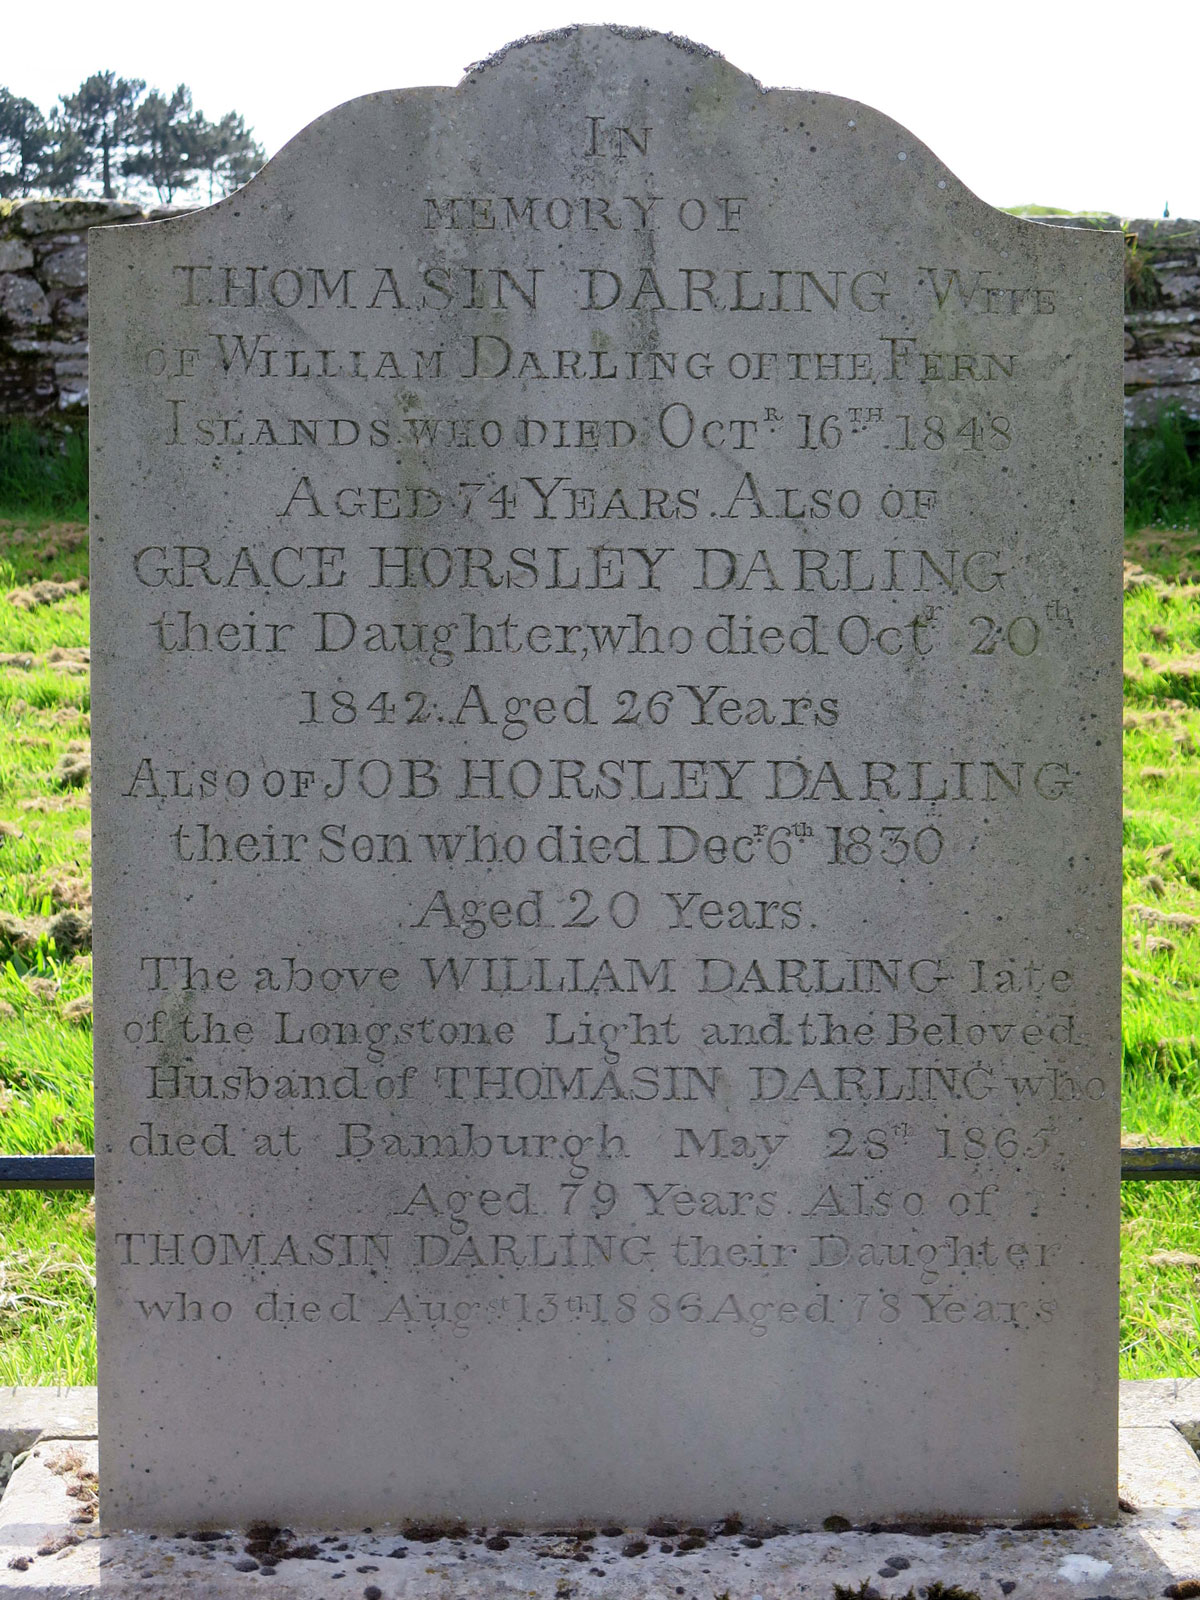 The Darling Family grave with the replacement headstone